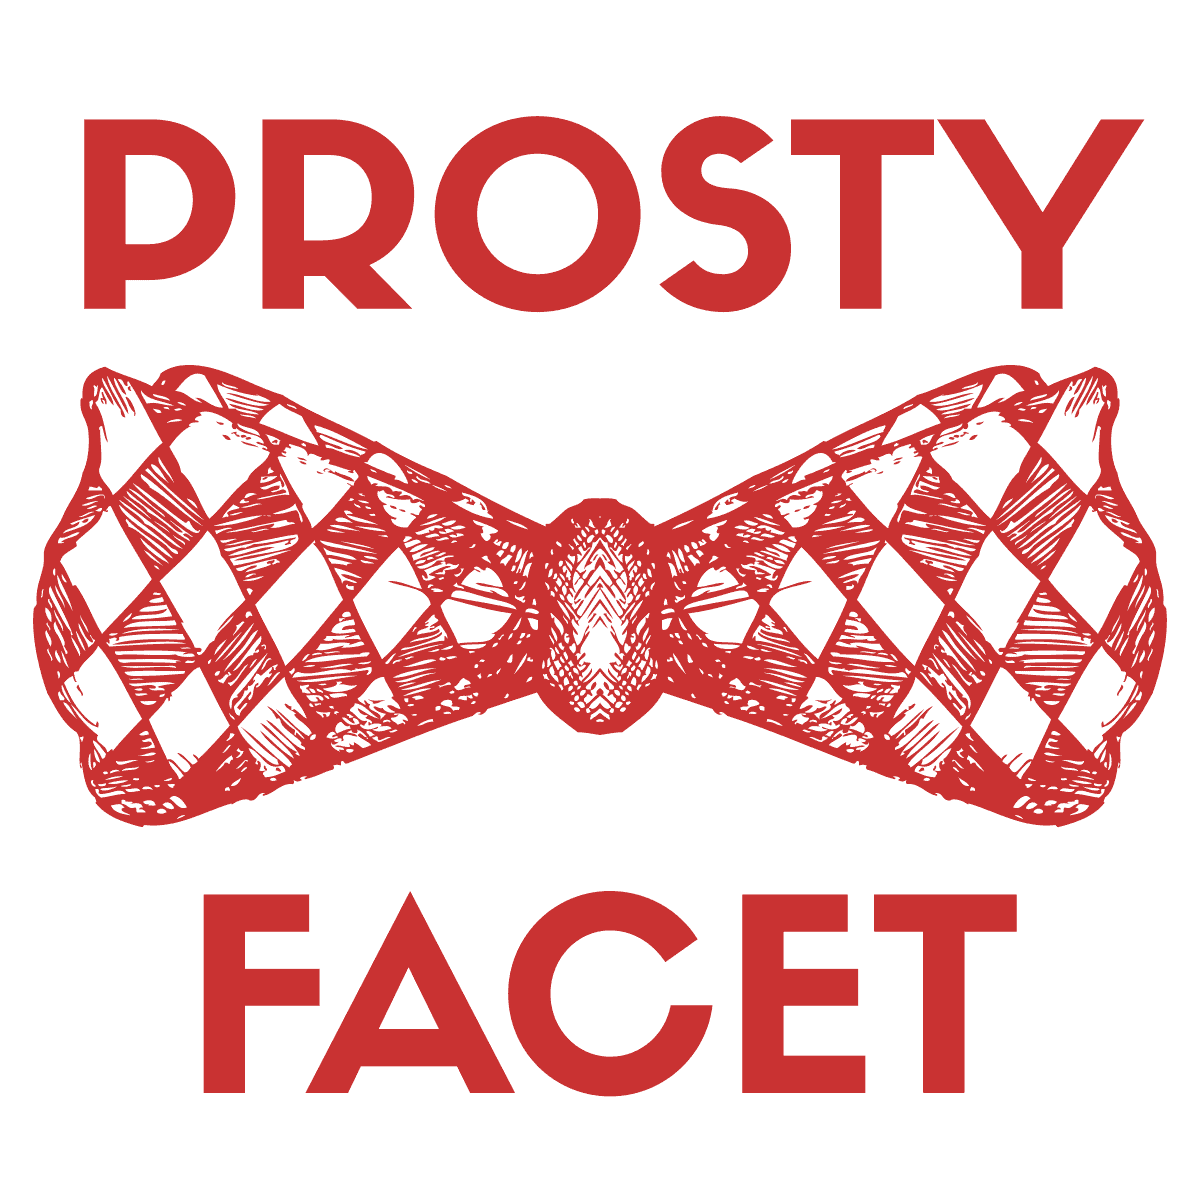 Prosty Facet BLOG Logo